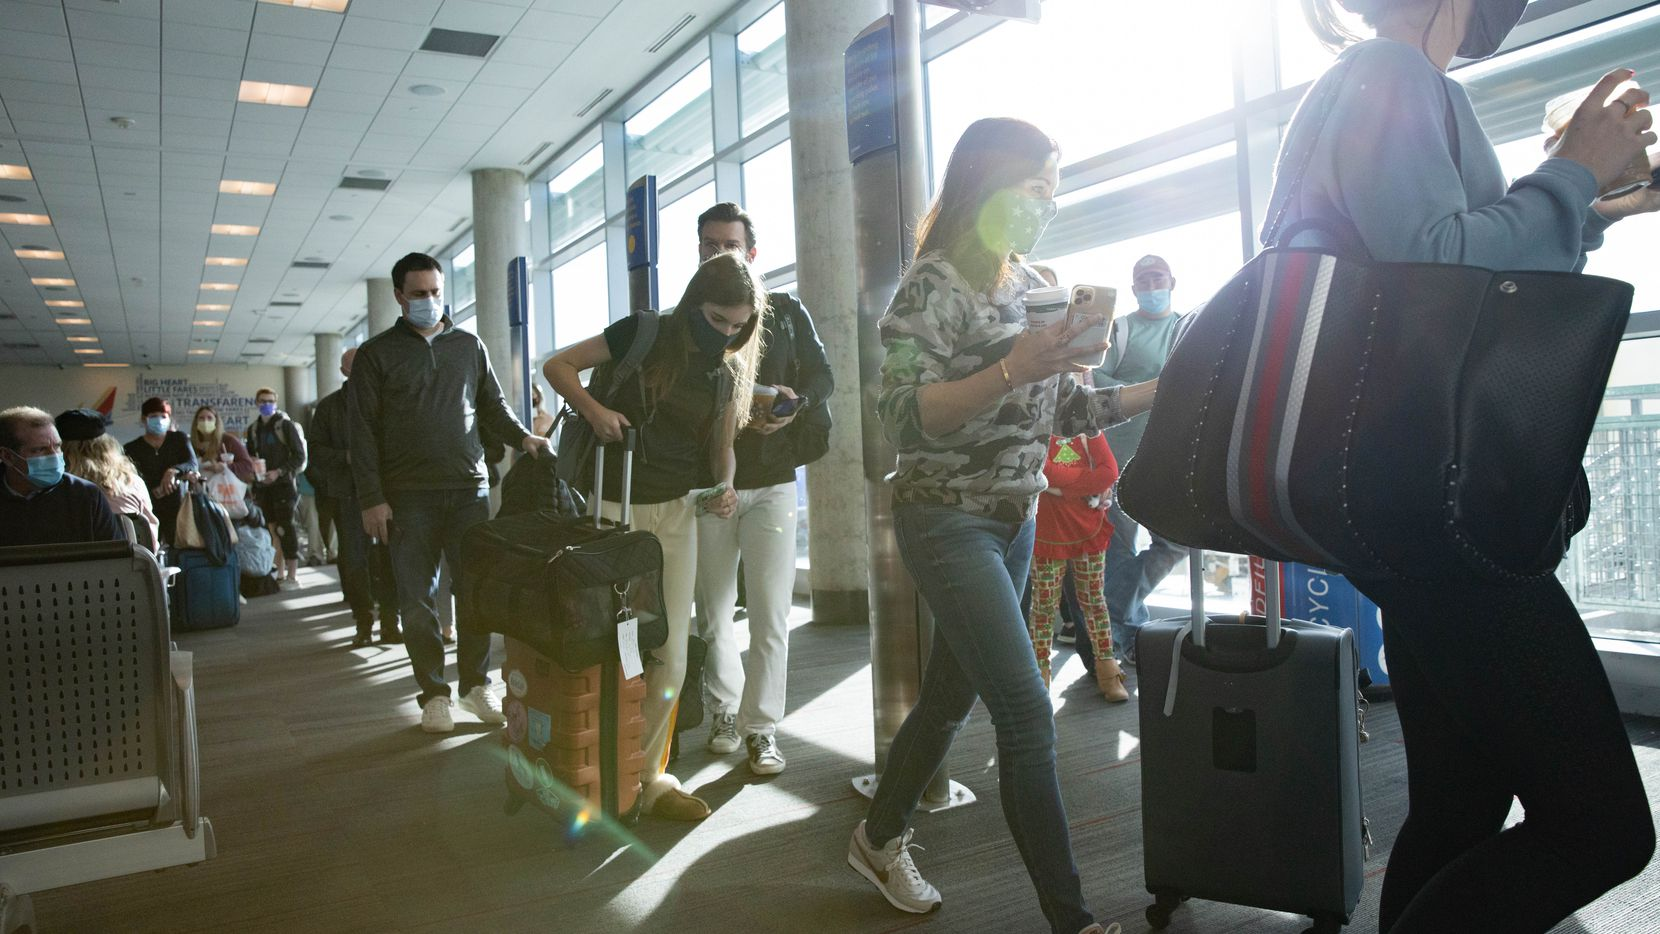 Holiday travelers board their Southwest flight at Dallas Love Field Airport in Dallas on Wednesday, Dec. 23, 2020. (Juan Figueroa/ The Dallas Morning News)